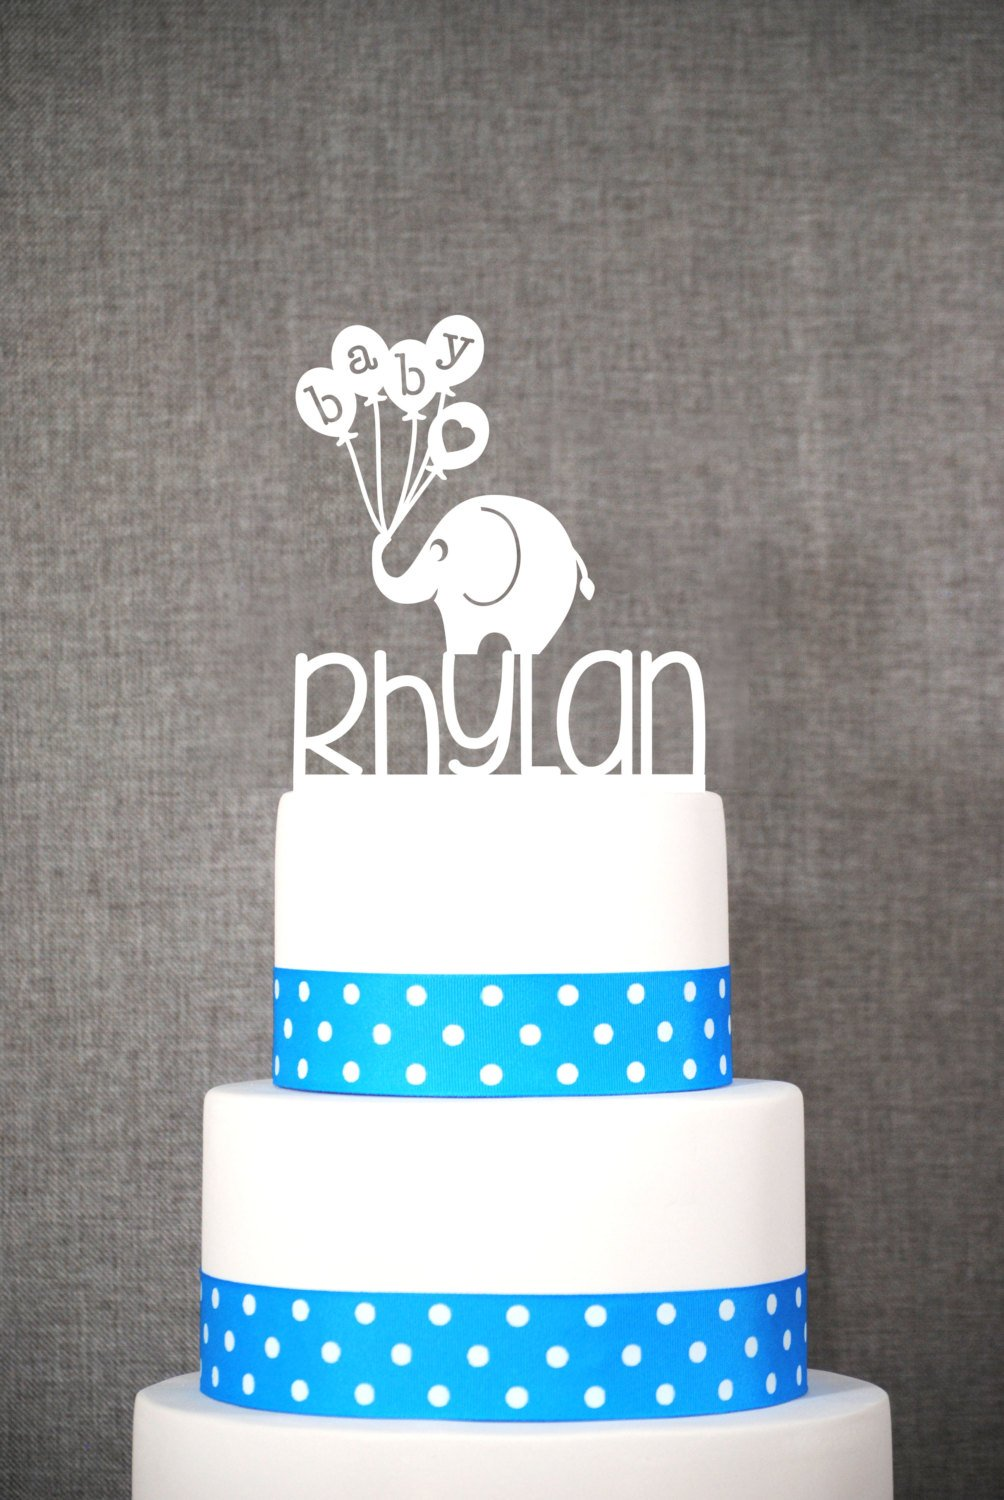 Custom Baby Name Topper With Elephant, Baby Shower Cake Topper, Cute Cake  Topper, Charming, Adorable Cake Topper - (T060)